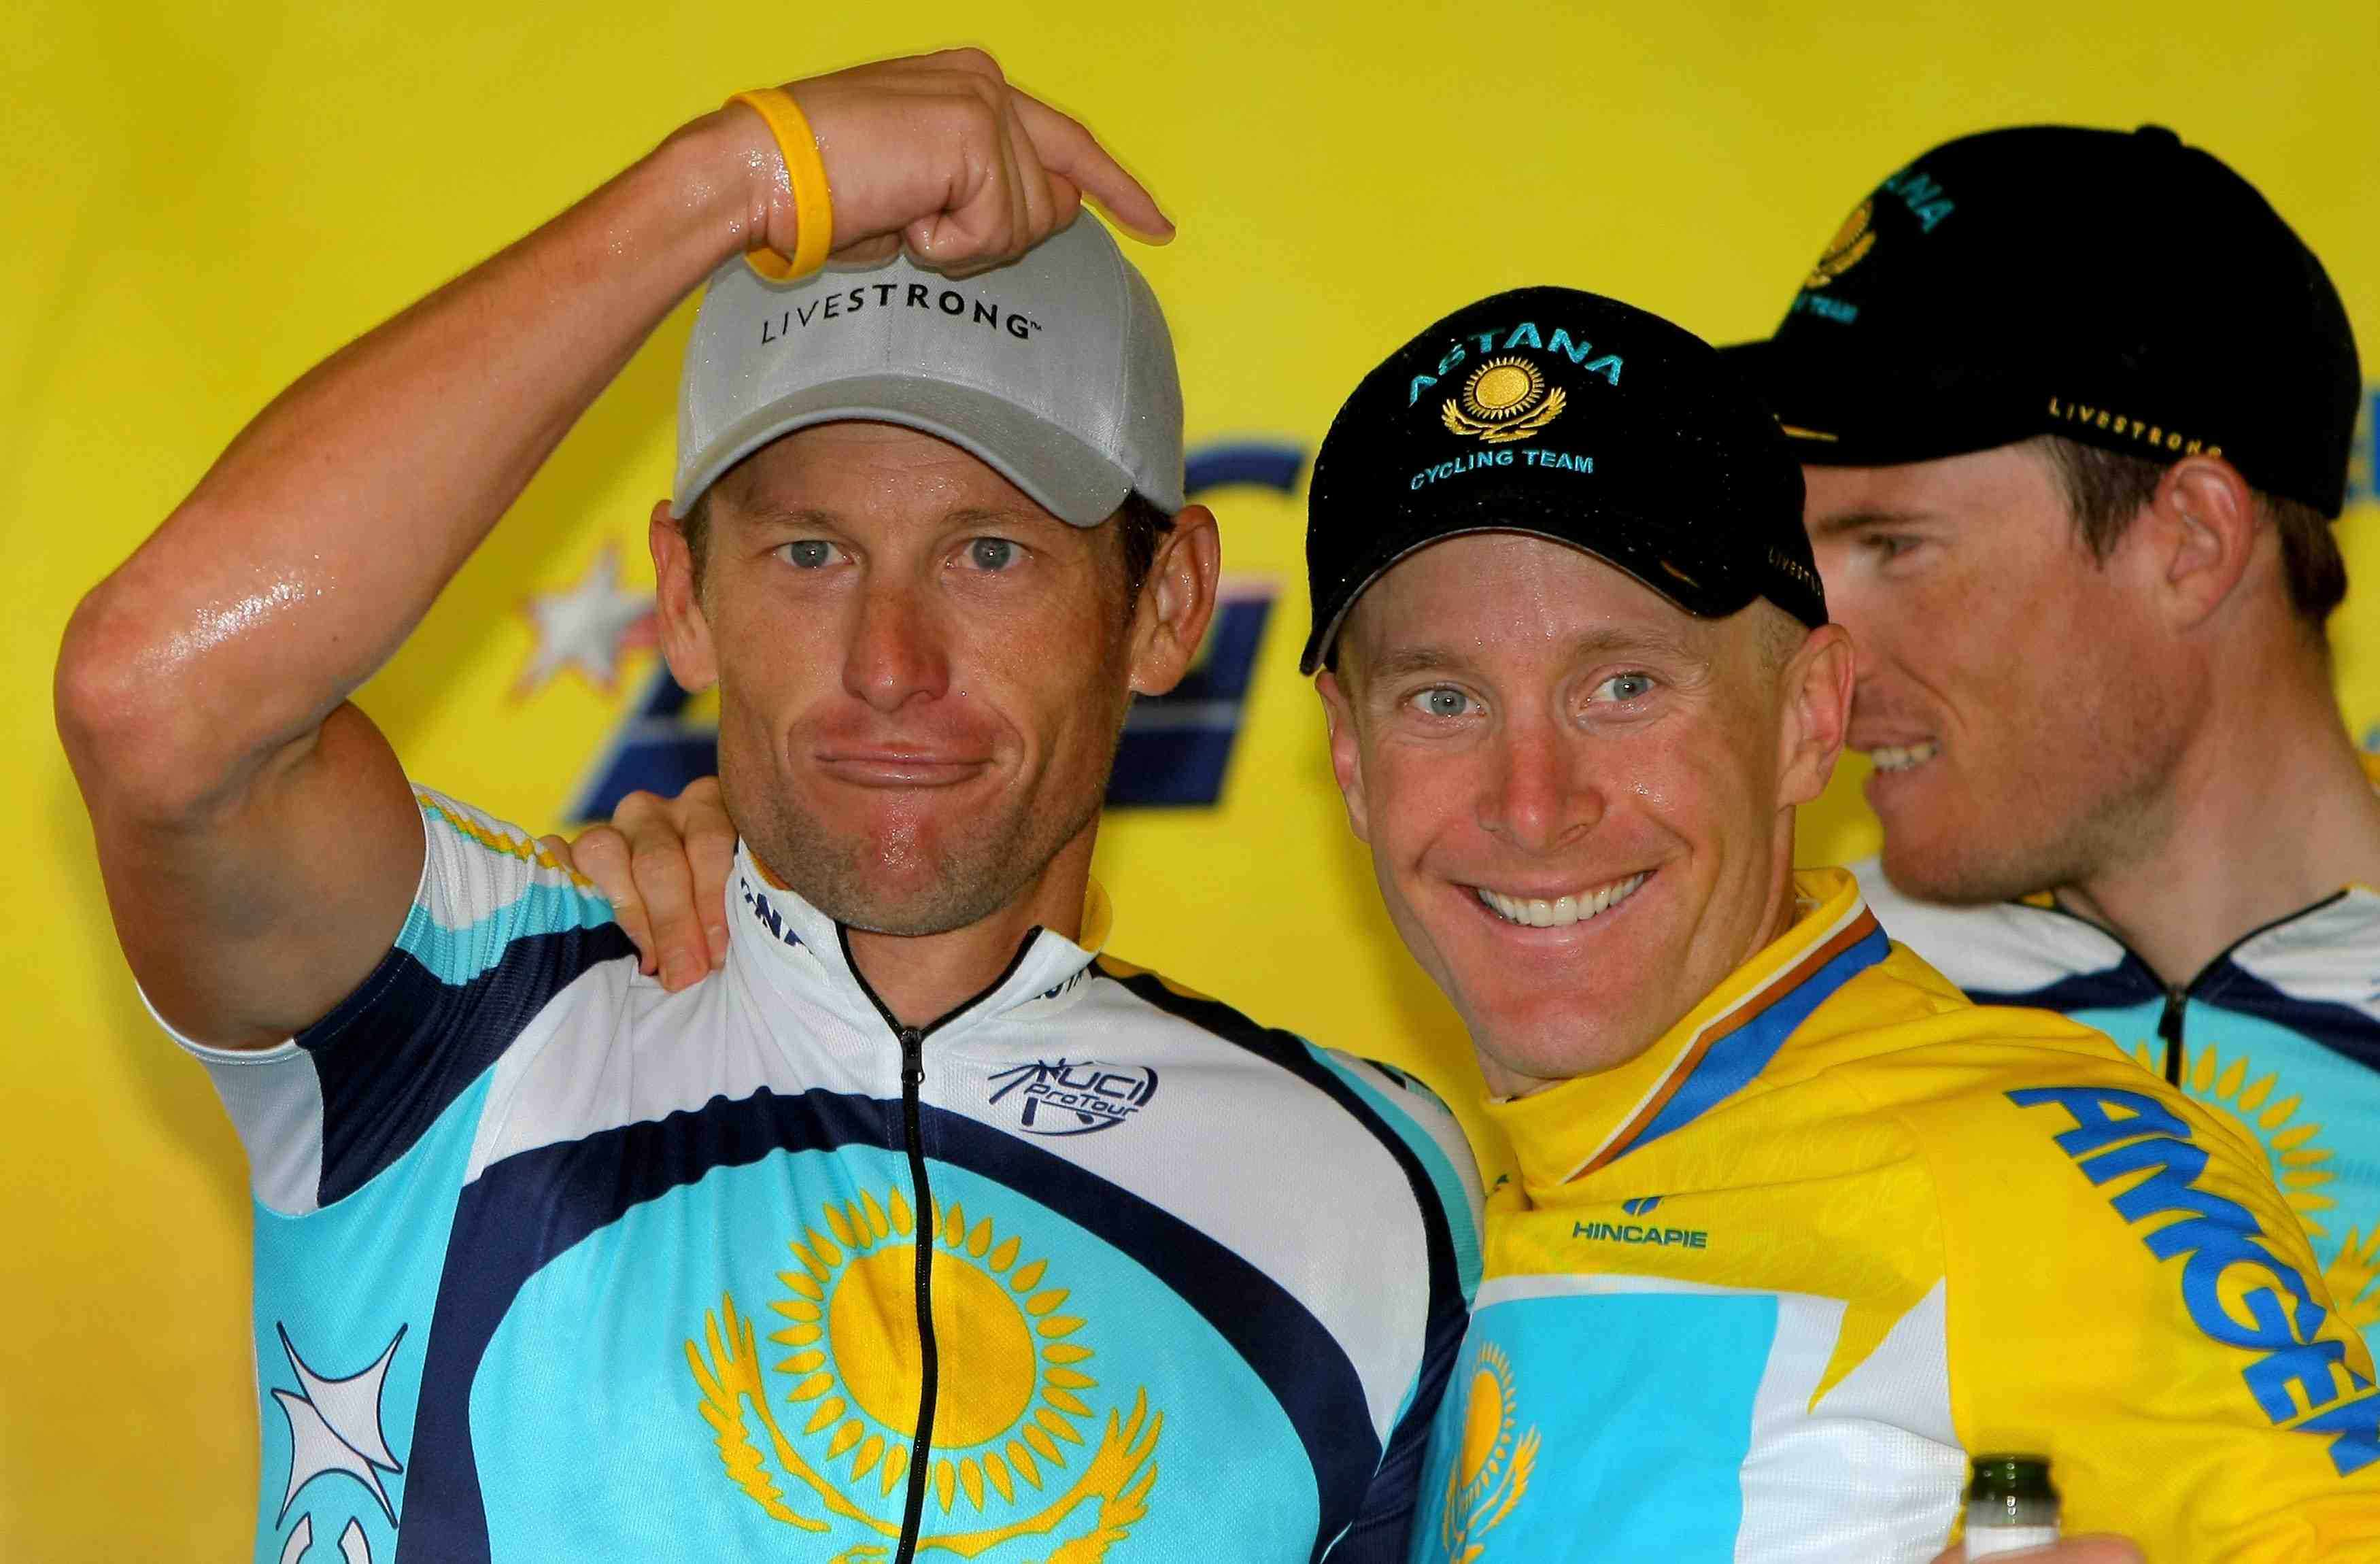 Lance Armstrong gestures to teammate Levi Leipheimer on the final Tour of California podium February 22, 2009.